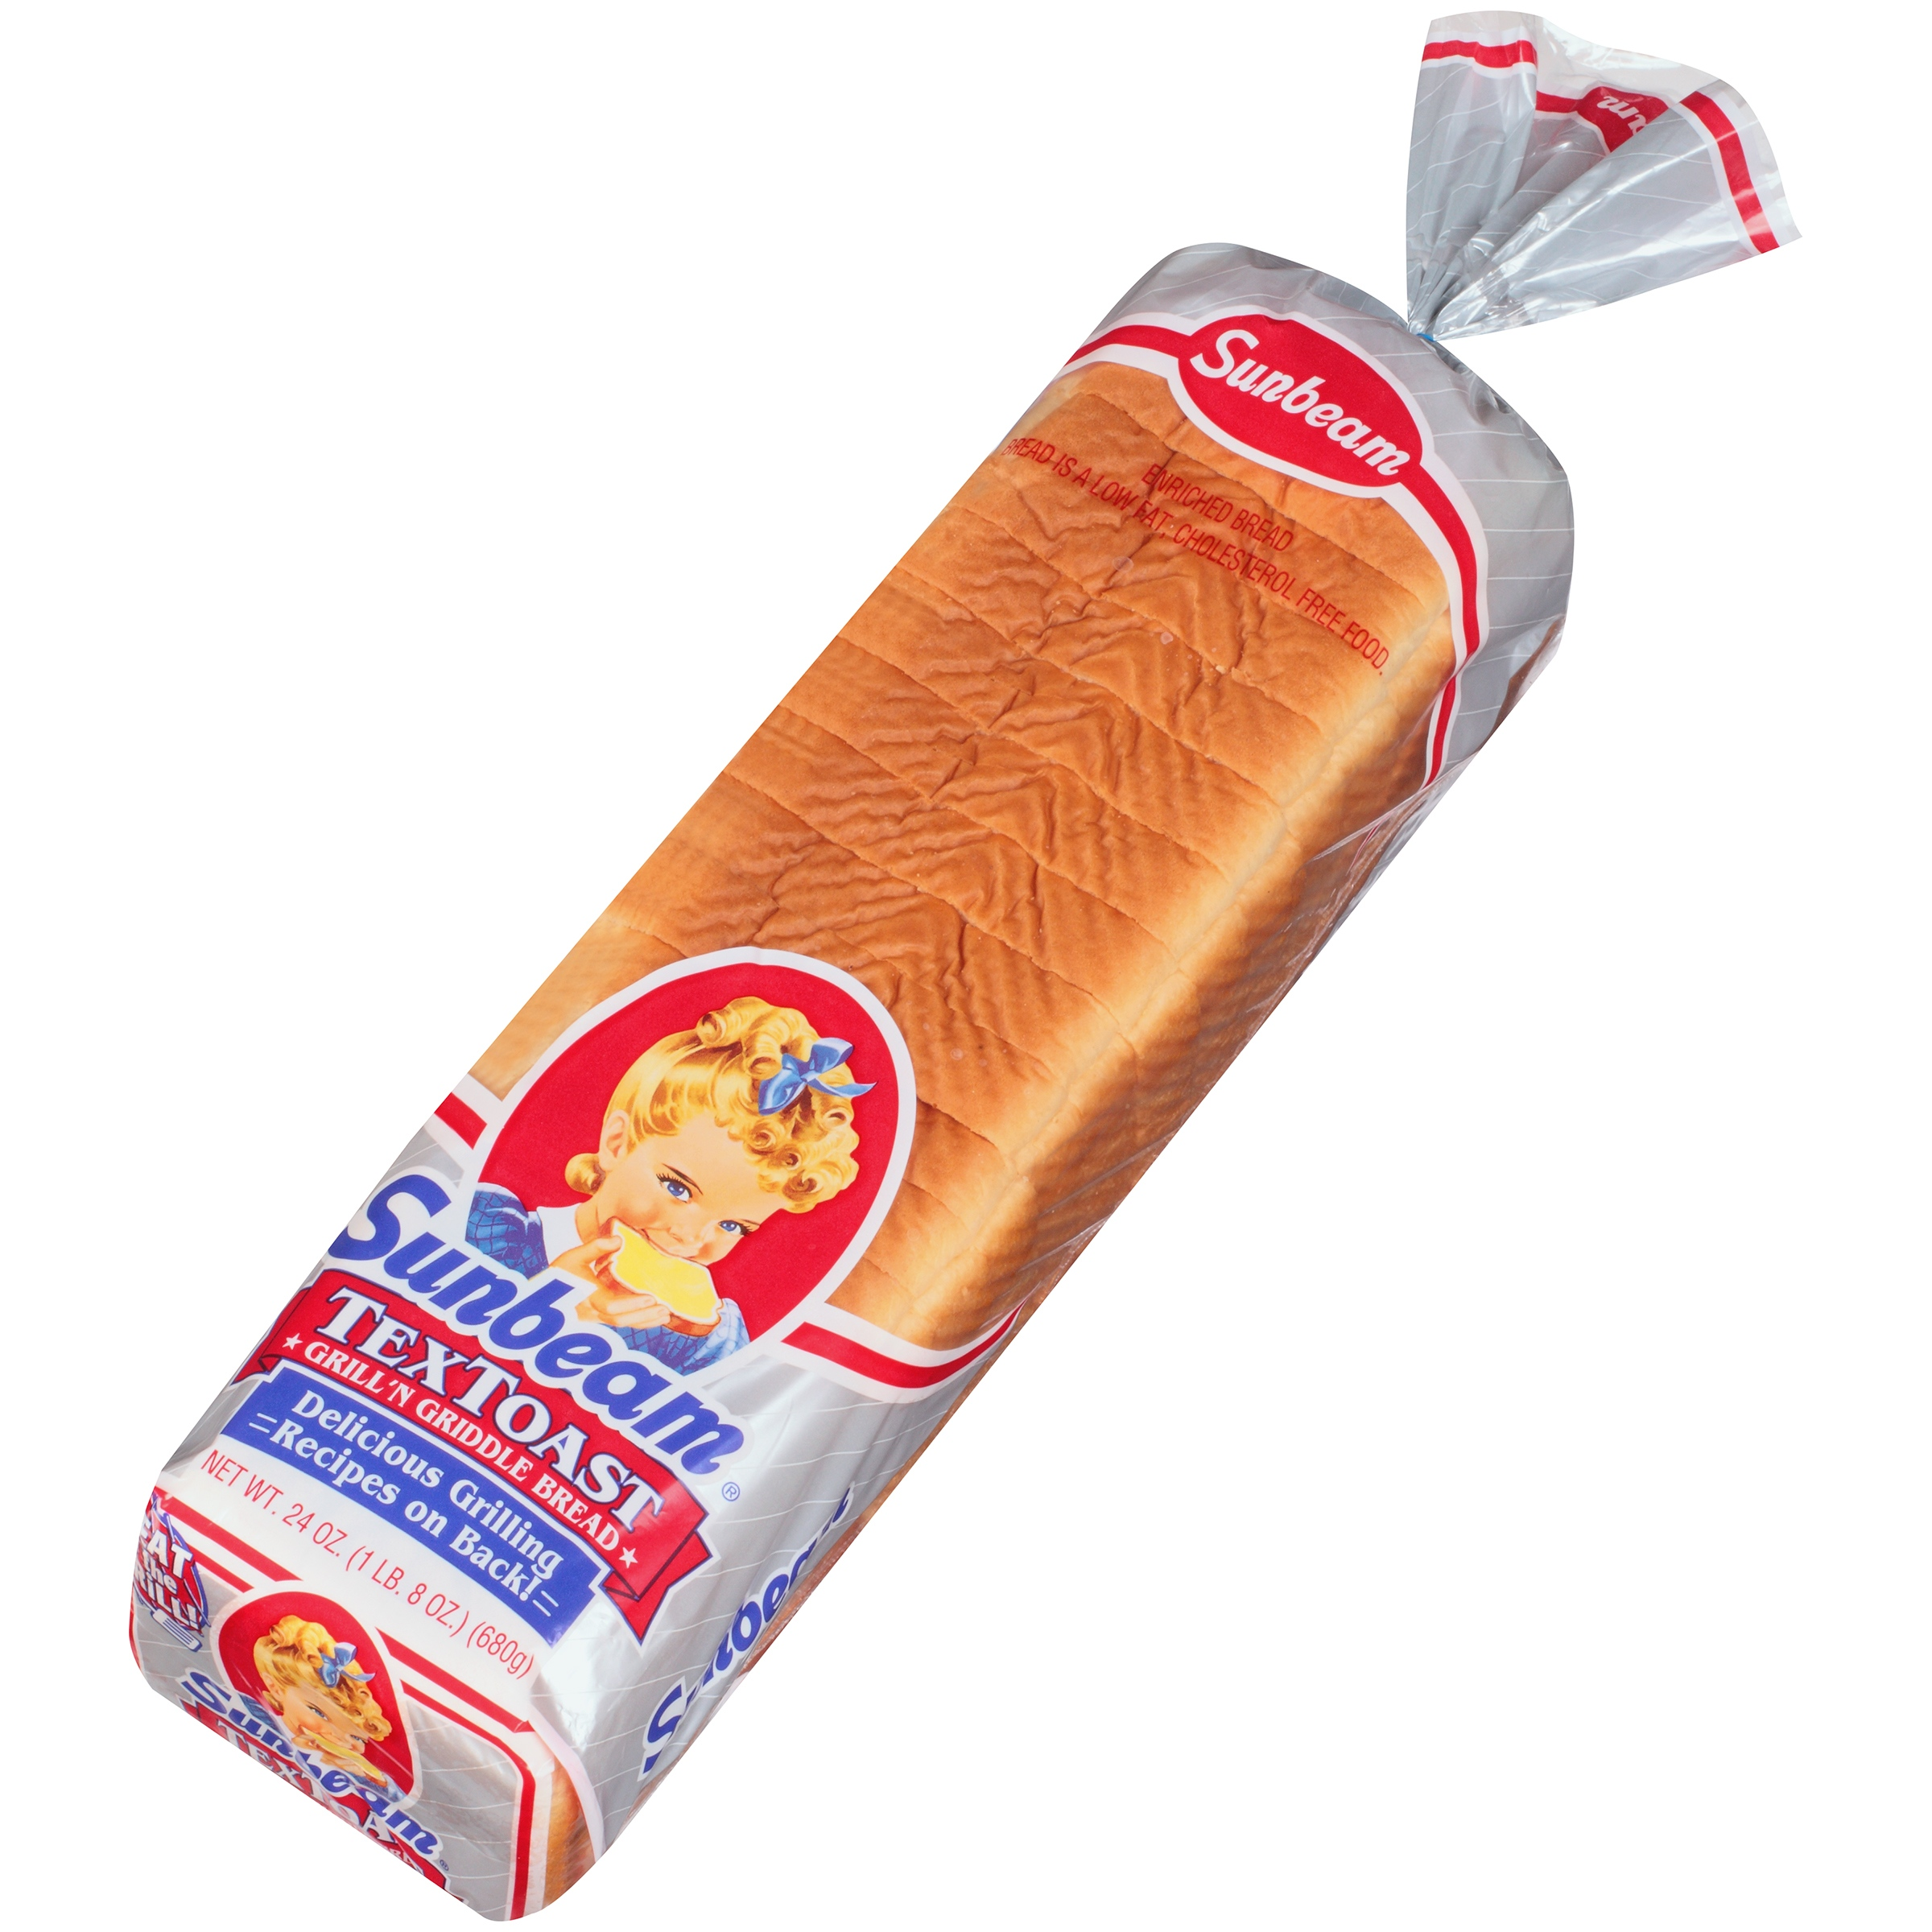 Sunbeam Textoast Sliced Bread, 24 oz